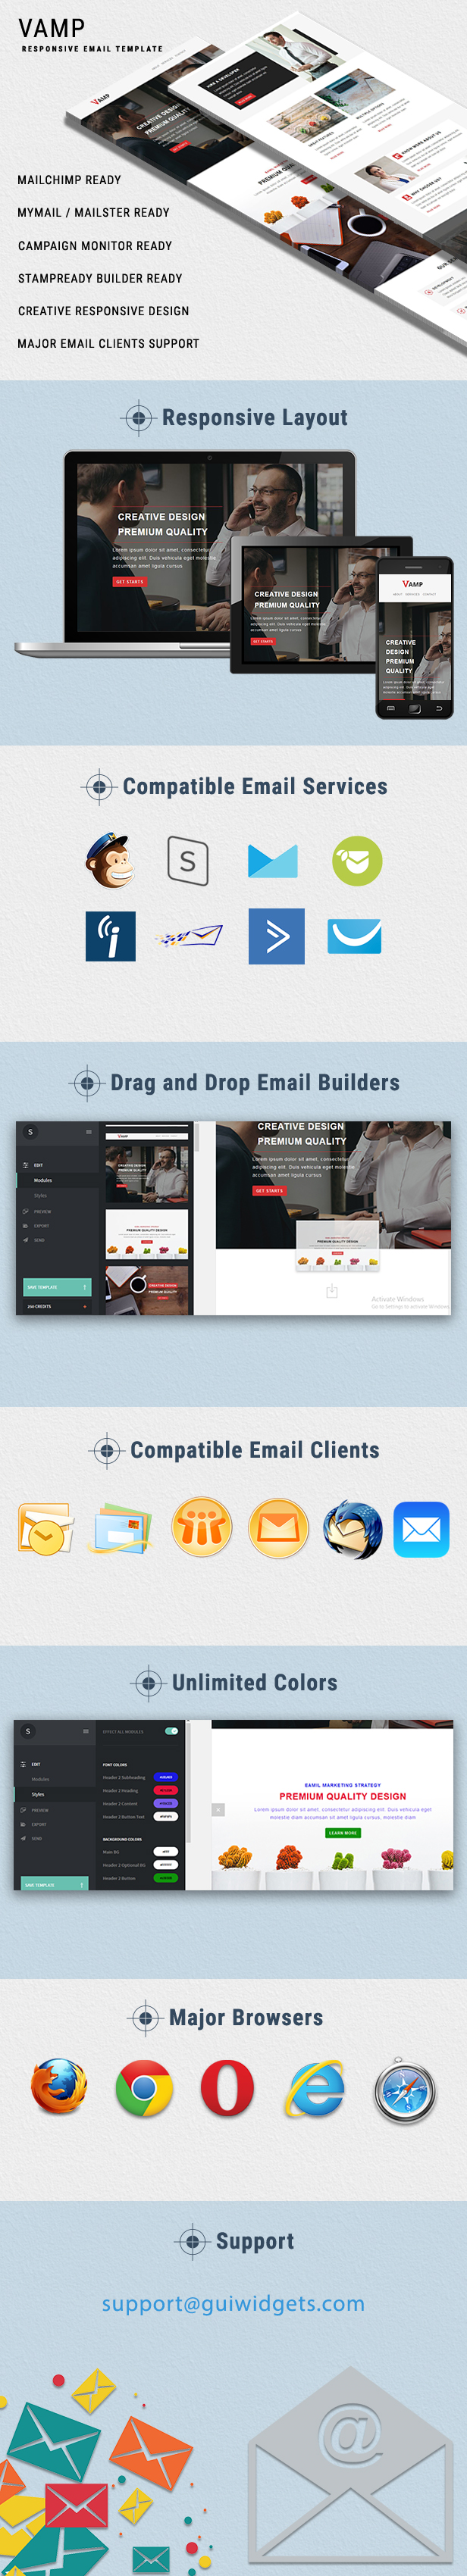 Vamp Email Template